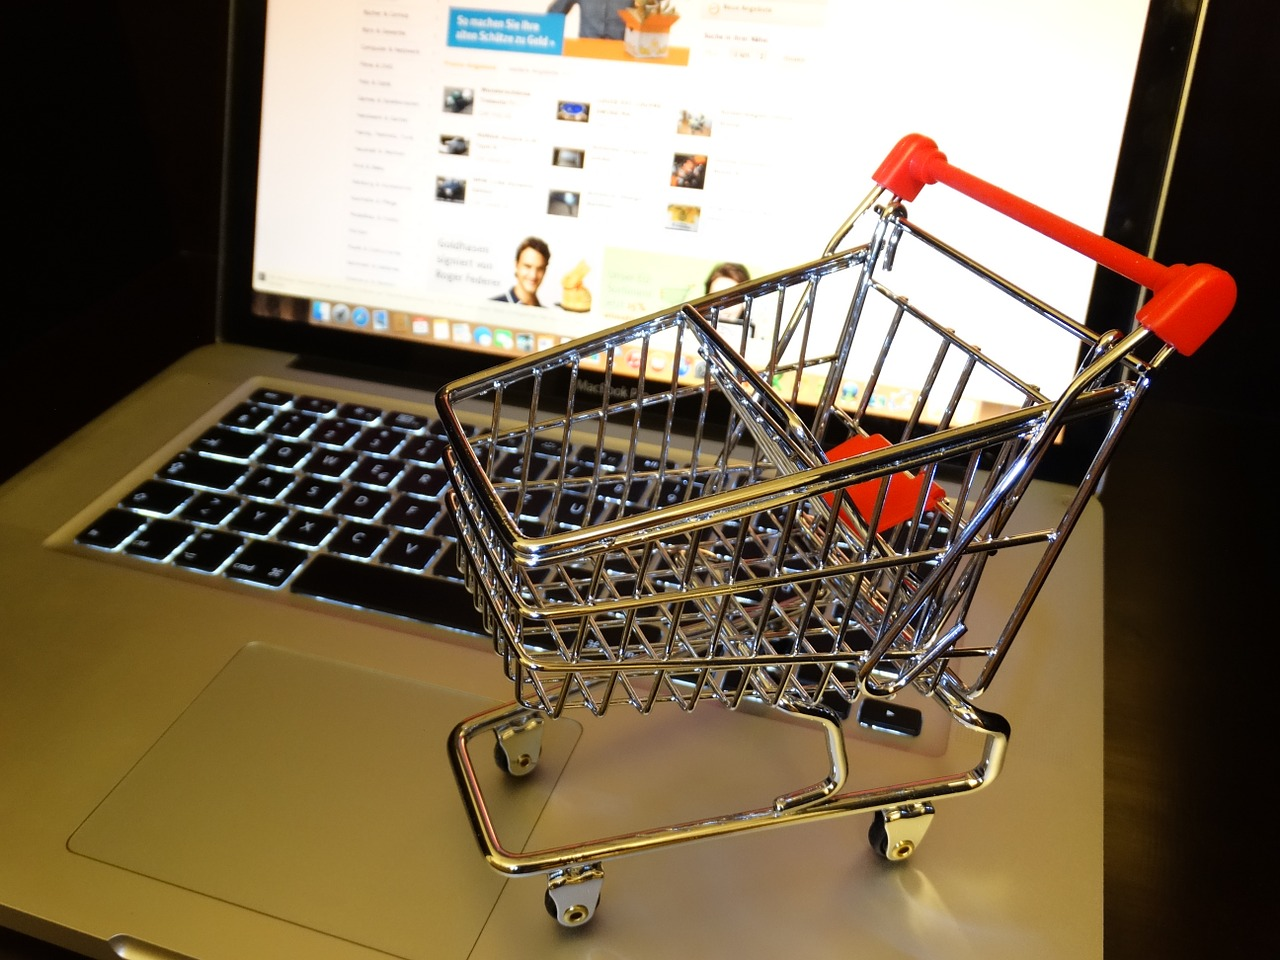 Ecommerce technology startup Buy It Installed Secures New Financing